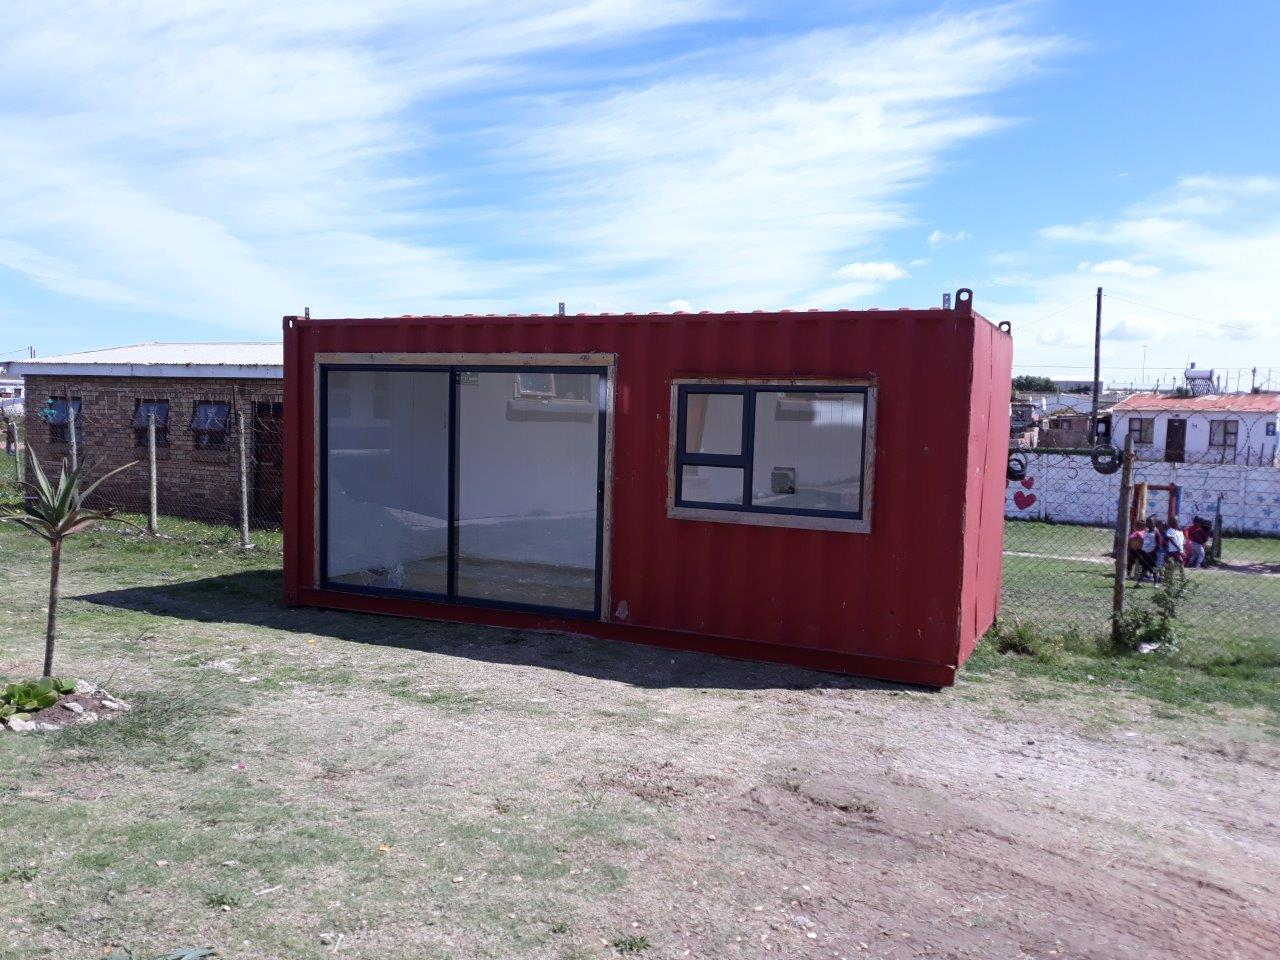 Container Haus Winterfest New Container For Jbay Recycling Project Jbay News